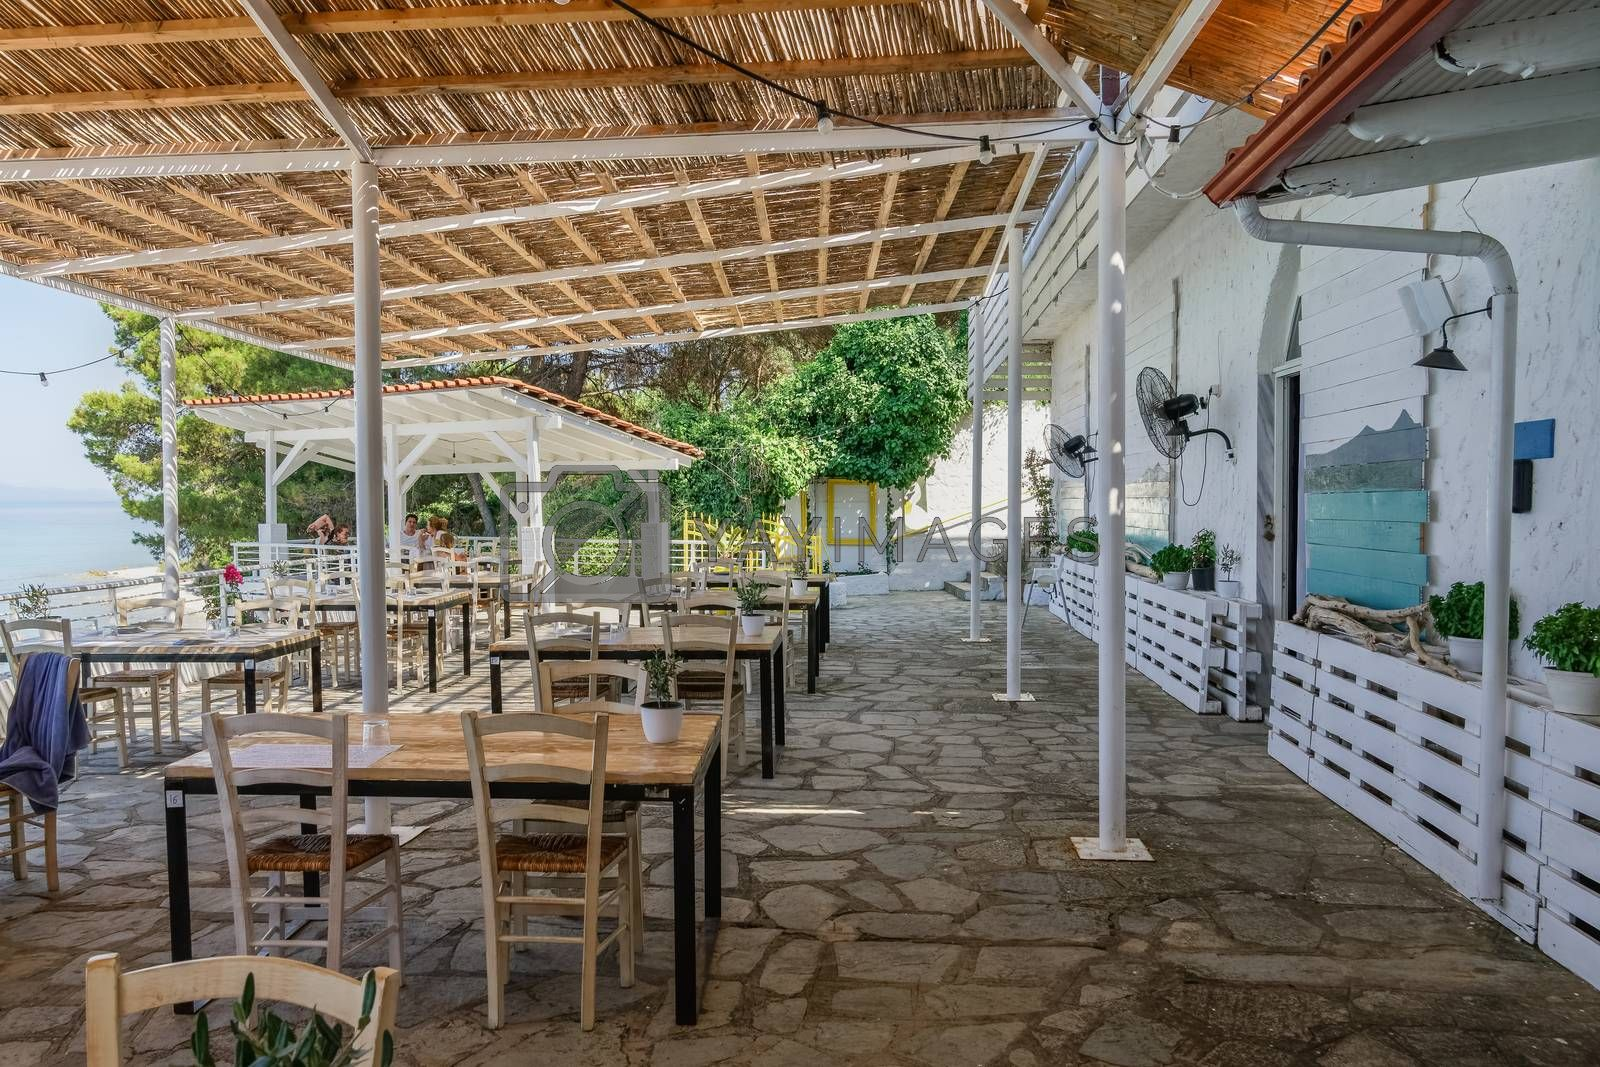 Restaurant outdoor seating area by the sea with a few customers in Kryopigi, Kassandra peninsula.